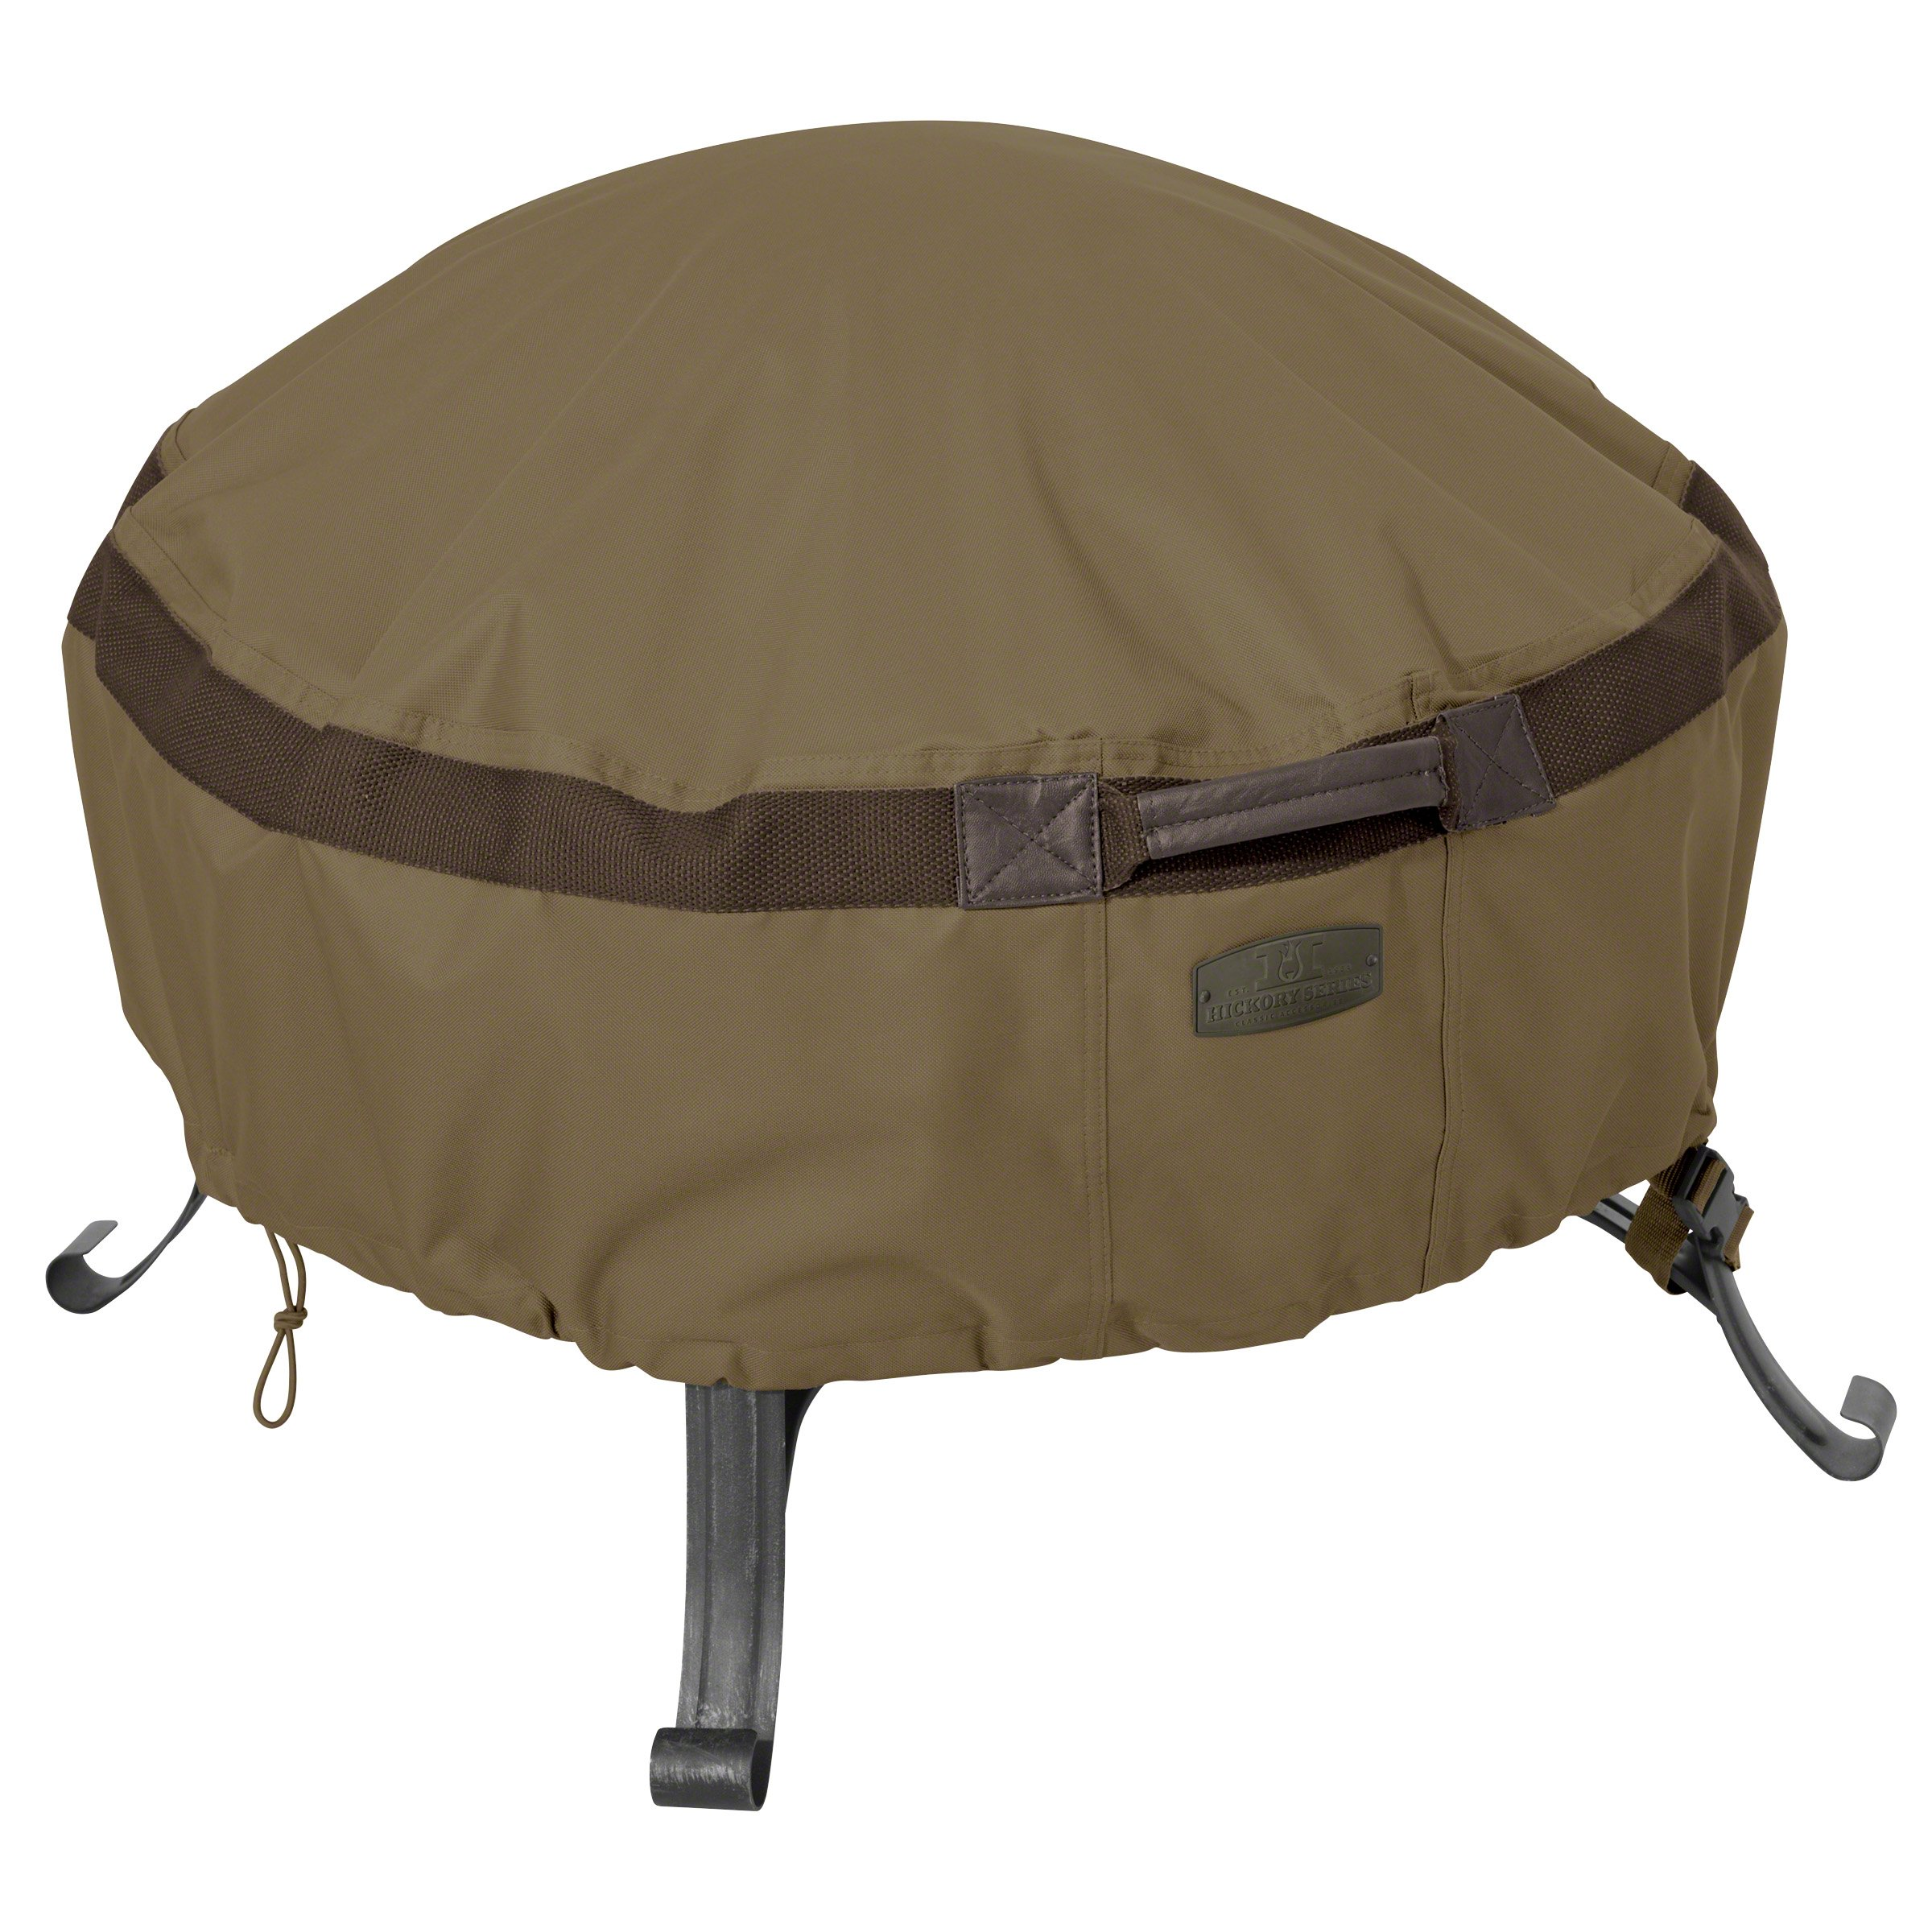 Classic Accessories Hickory Heavy Duty Full Coverage Round Fire Pit Cover - Durable and Water Resistant Patio Cover, Small (55-632-240101-EC)